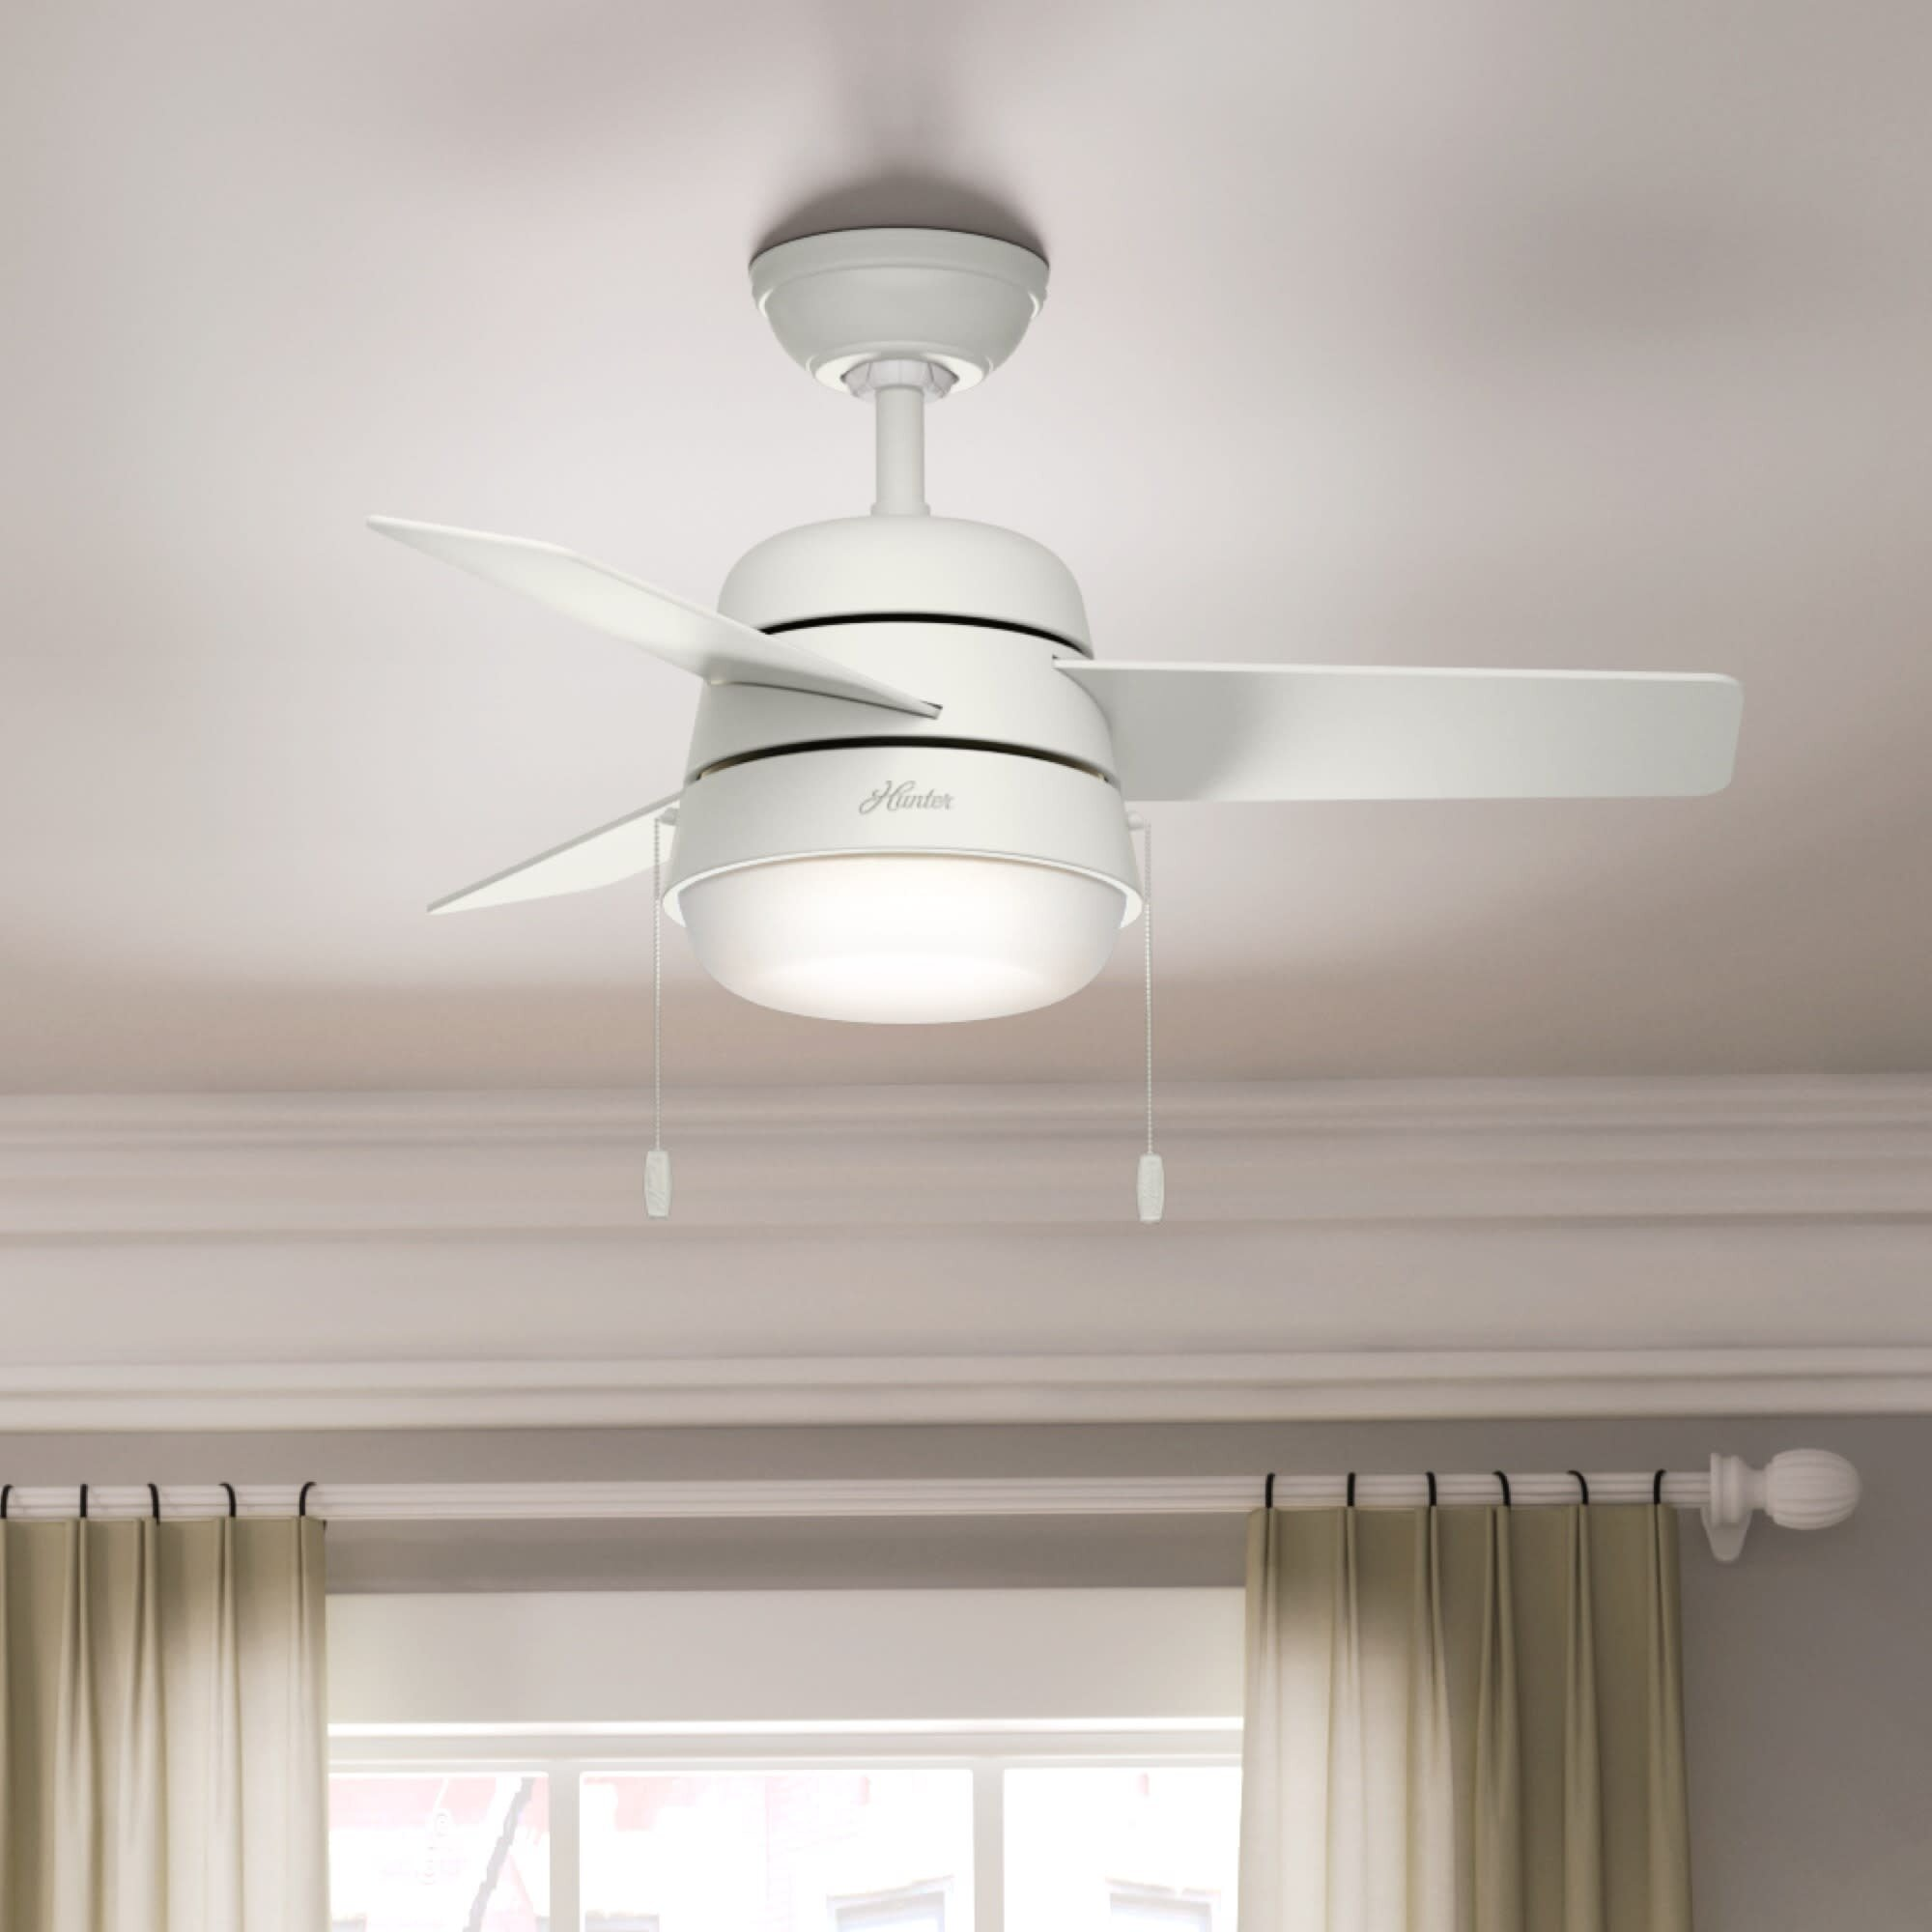 Hunter Fan 36 Aker 3 Blade Led Standard Ceiling Fan With Pull Chain And Light Kit Included Reviews Wayfair